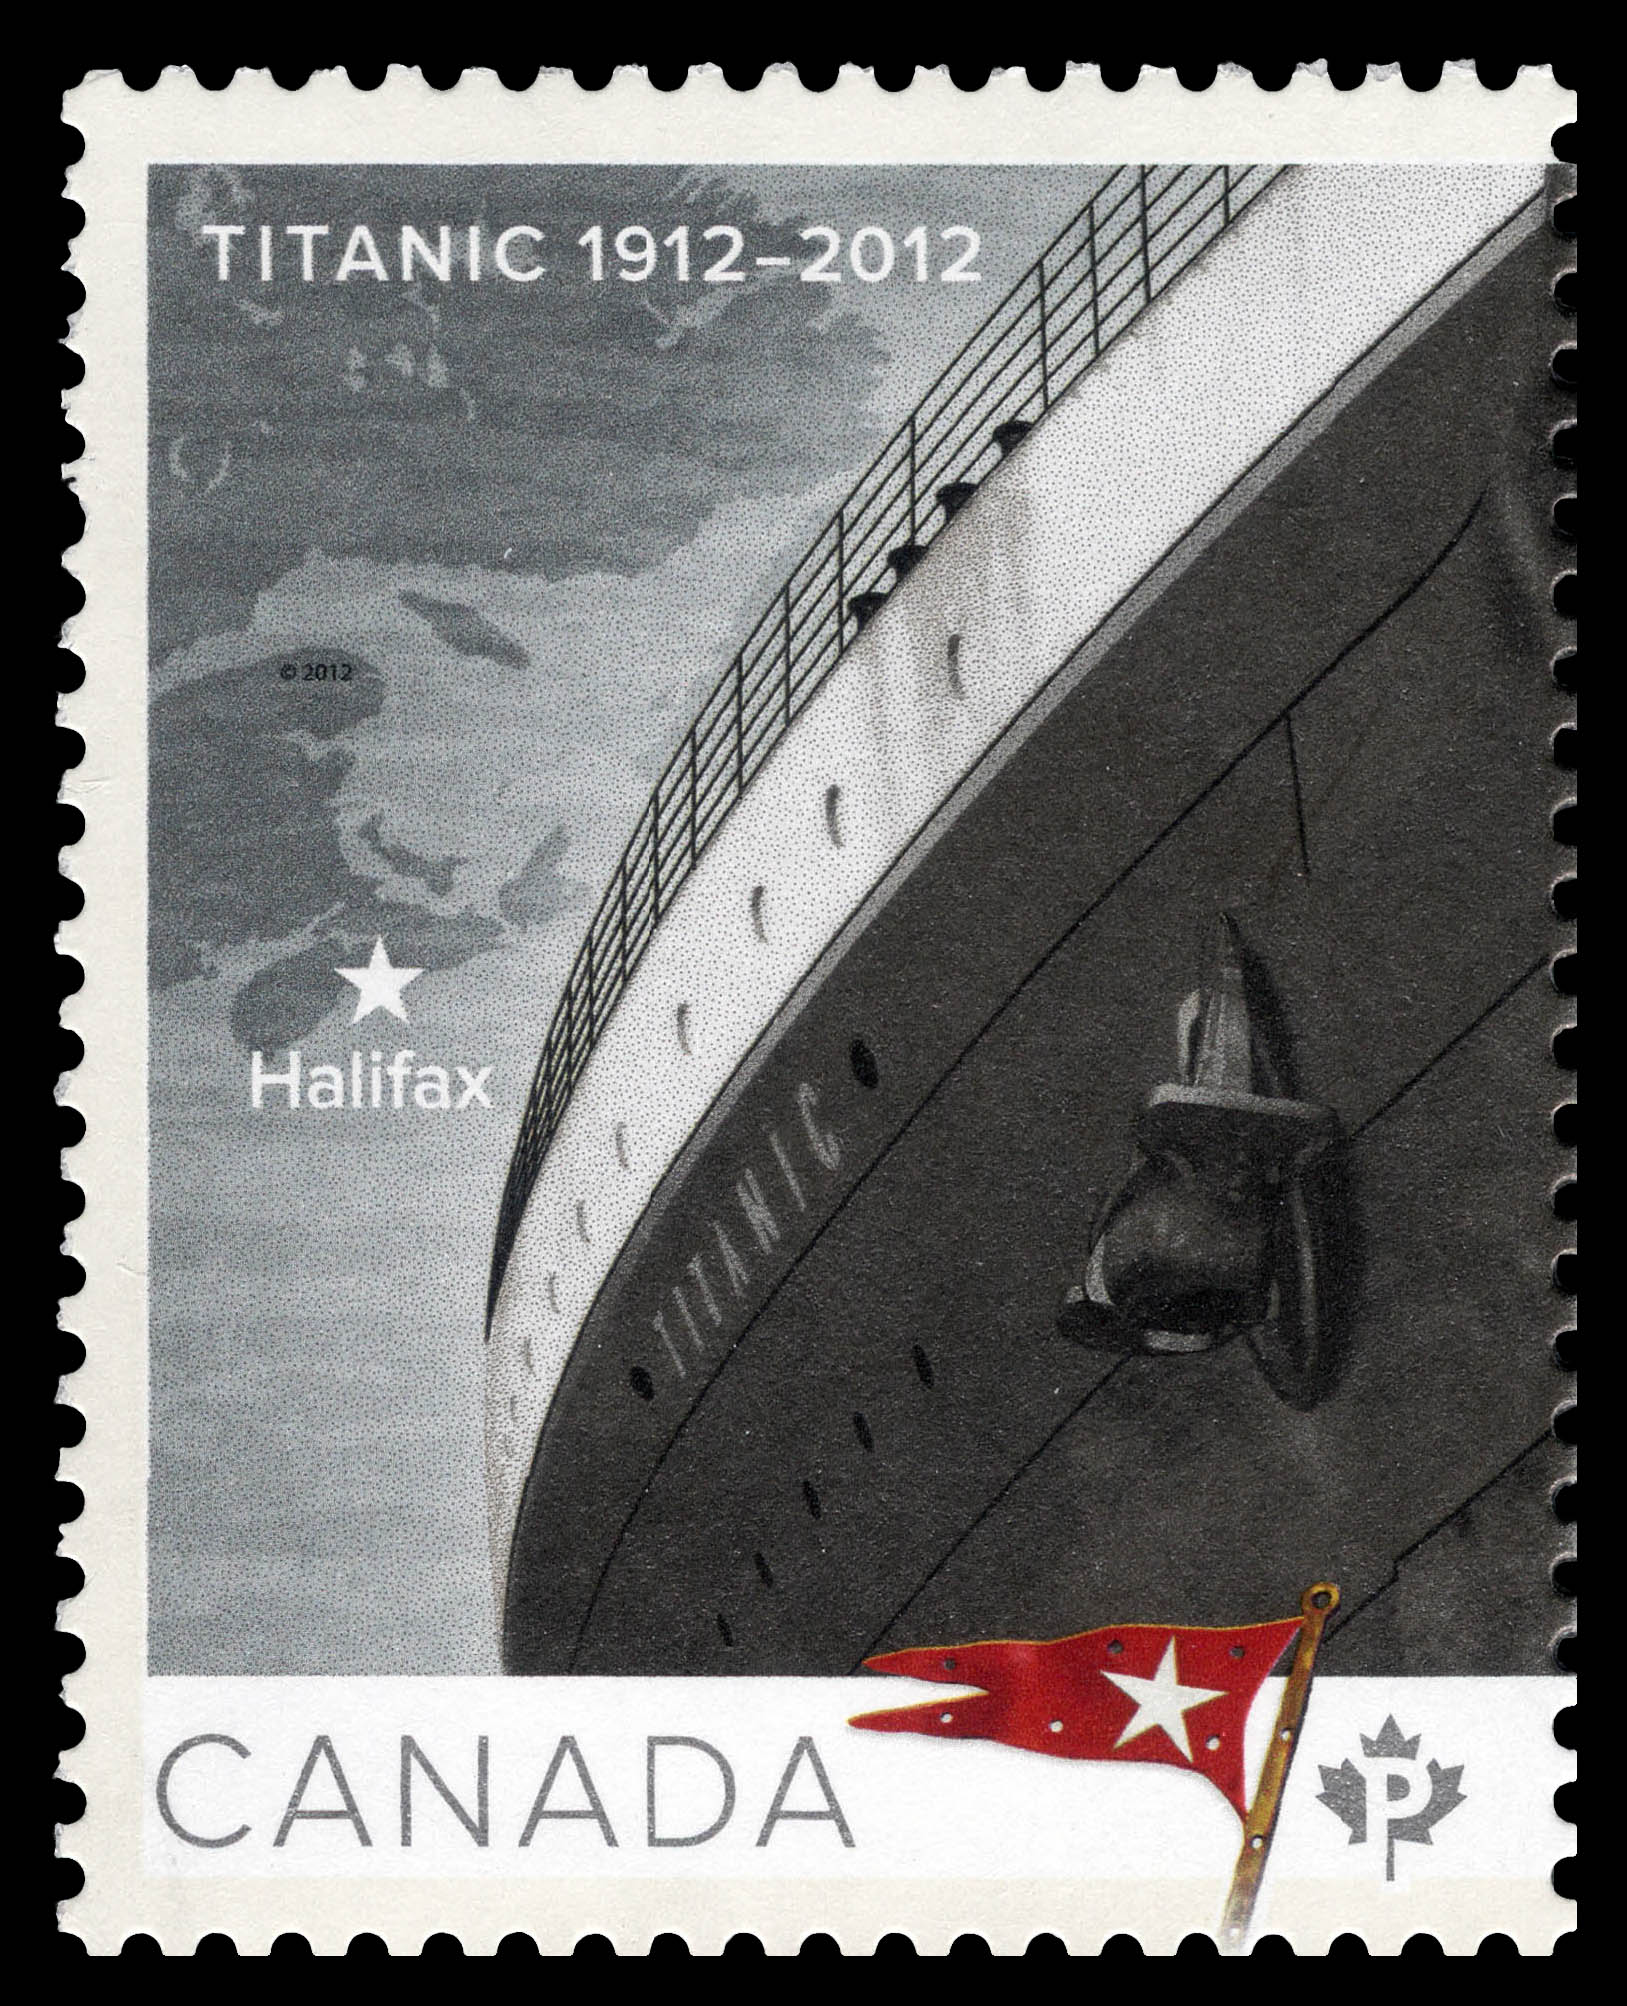 Titanic 1912-2012 Canada Postage Stamp | Centennial of the Sinking of the Titanic